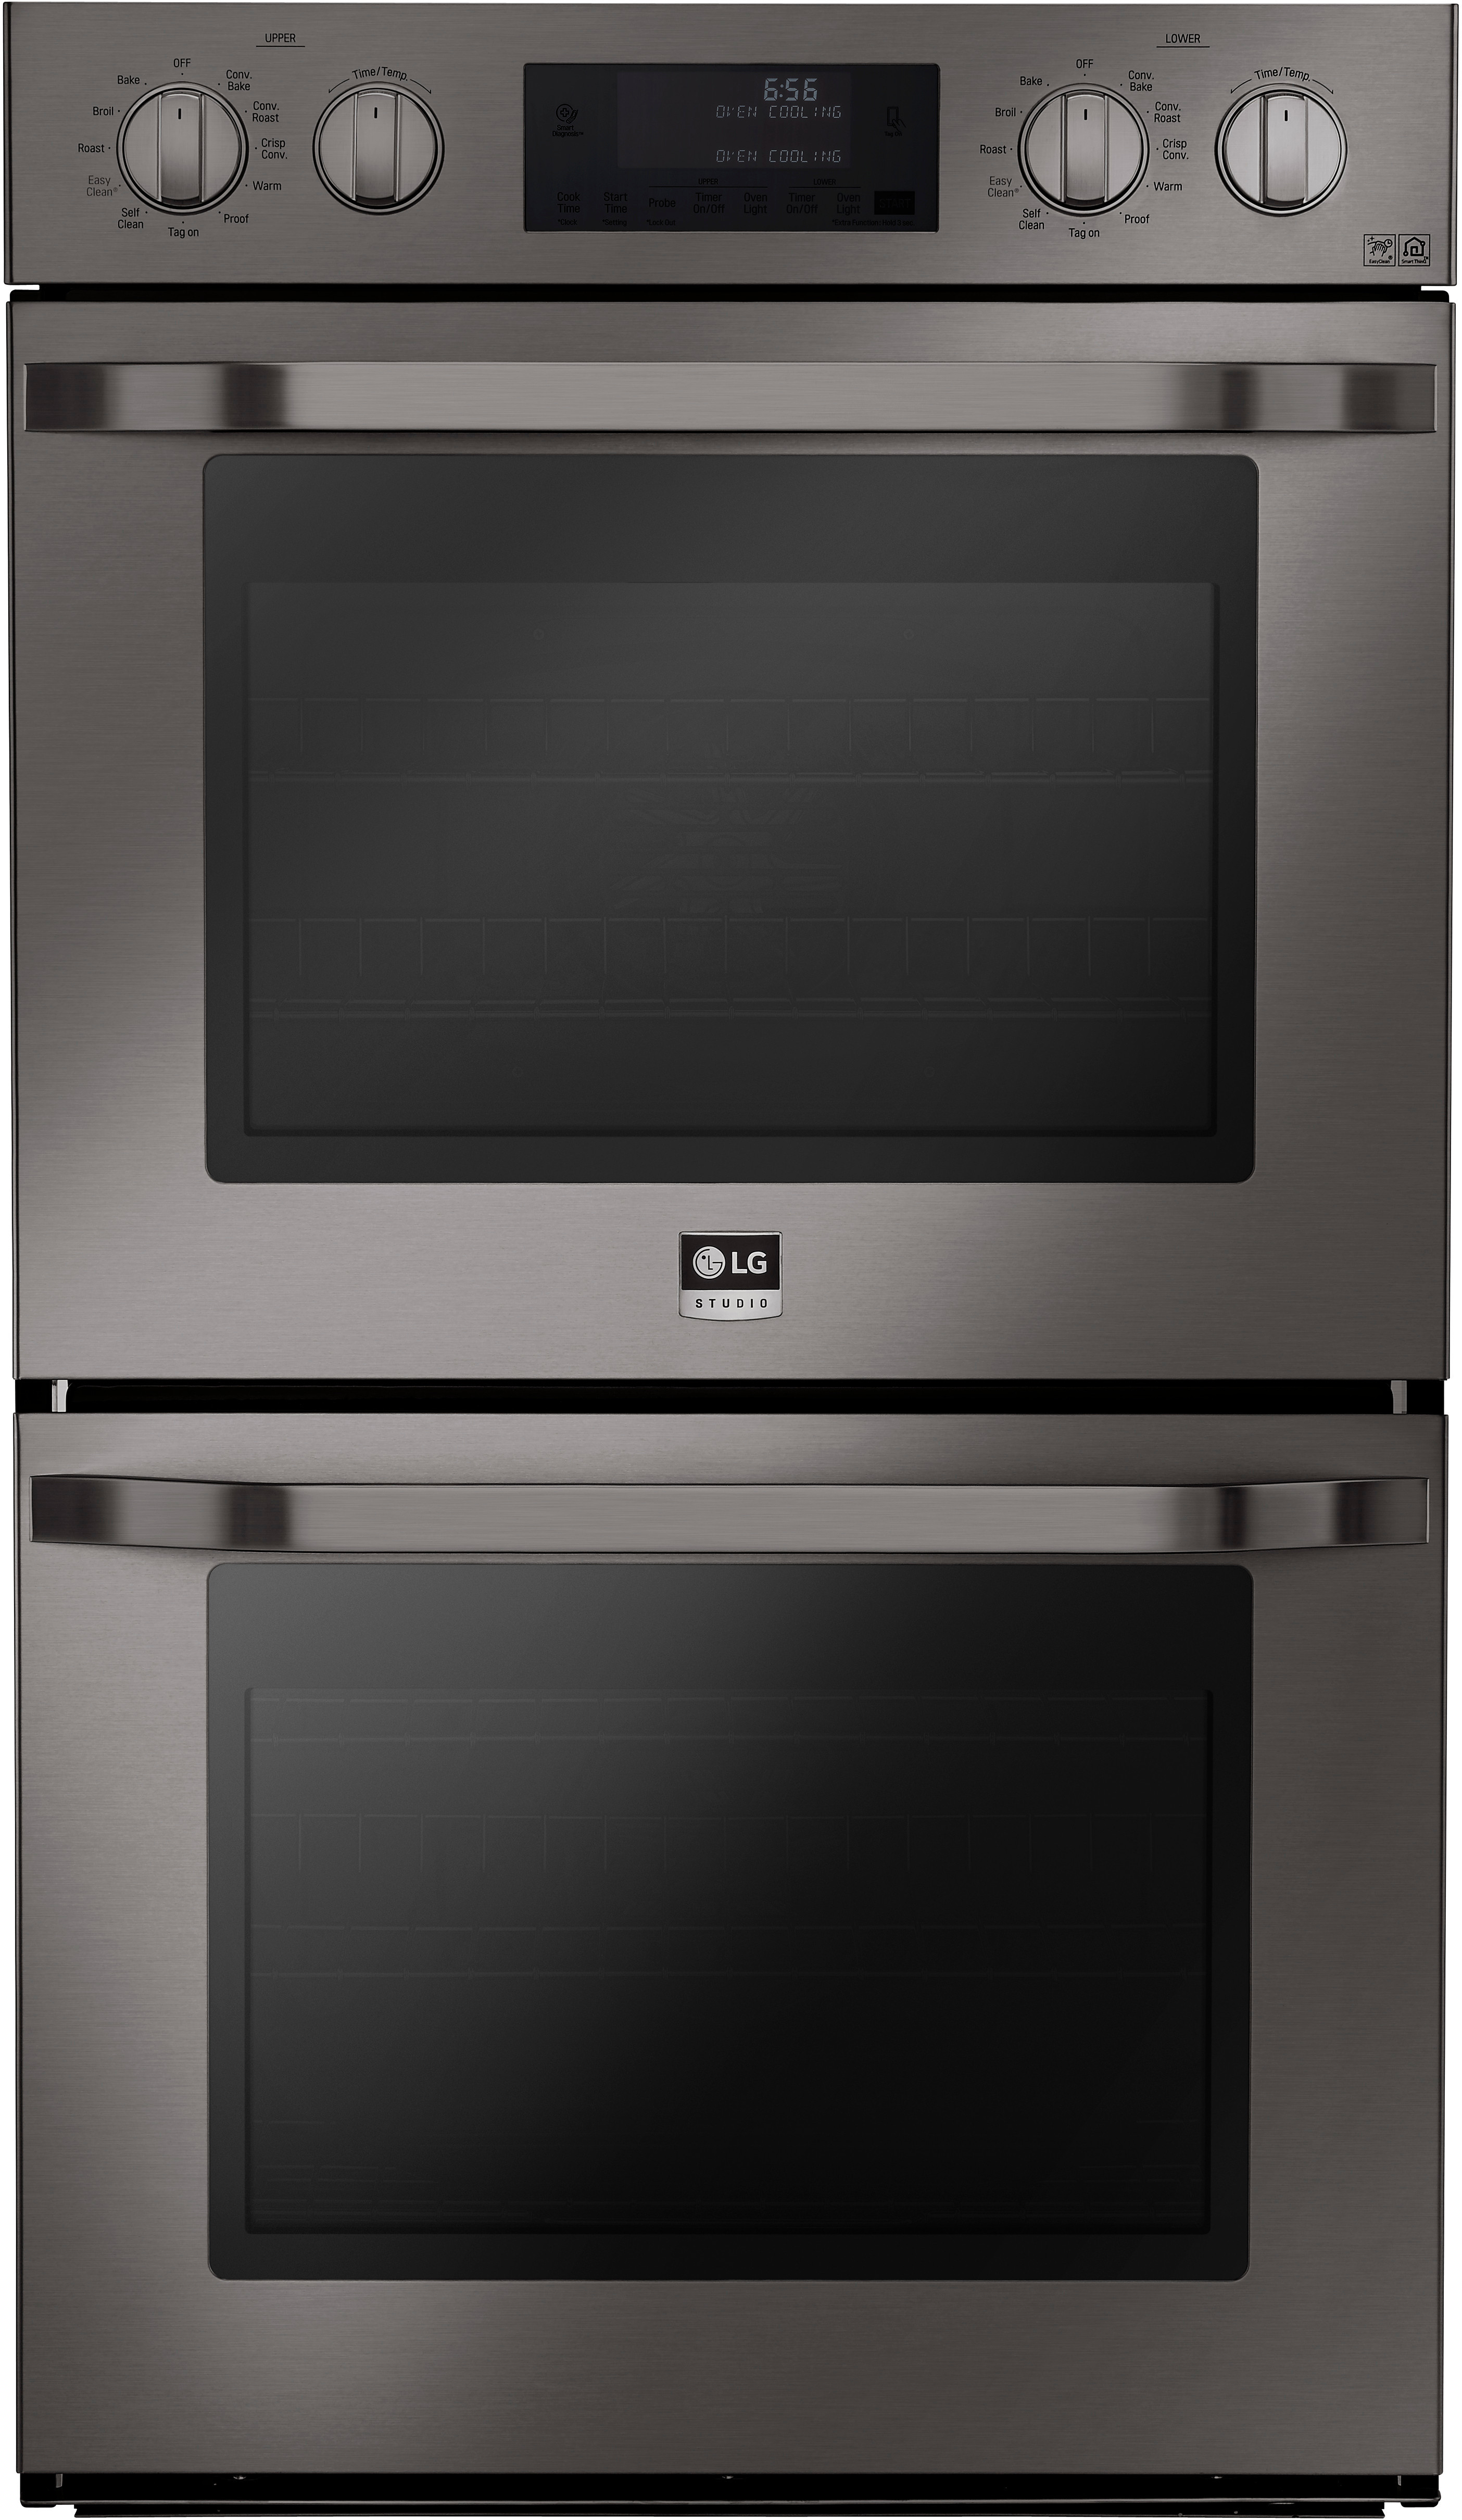 Microwave Oven With Temperature Probe Bestmicrowave